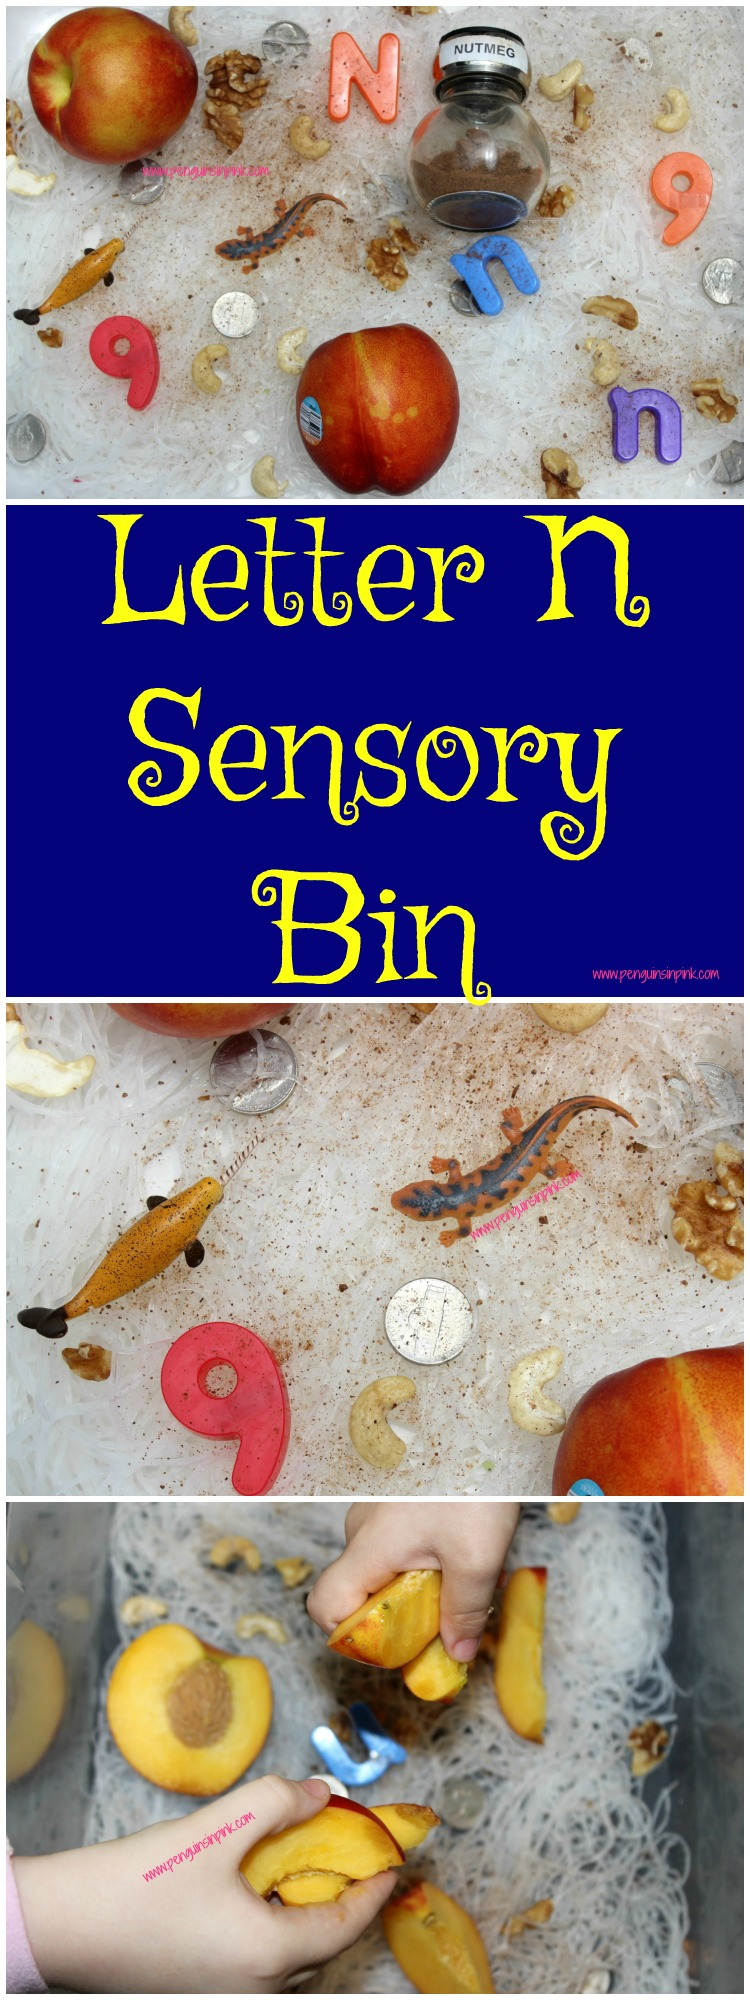 "Letter N Sensory Bin - This noodle based sensory bin has it all newt, narwhal, nickels, and other items beginning with letter ""N""."